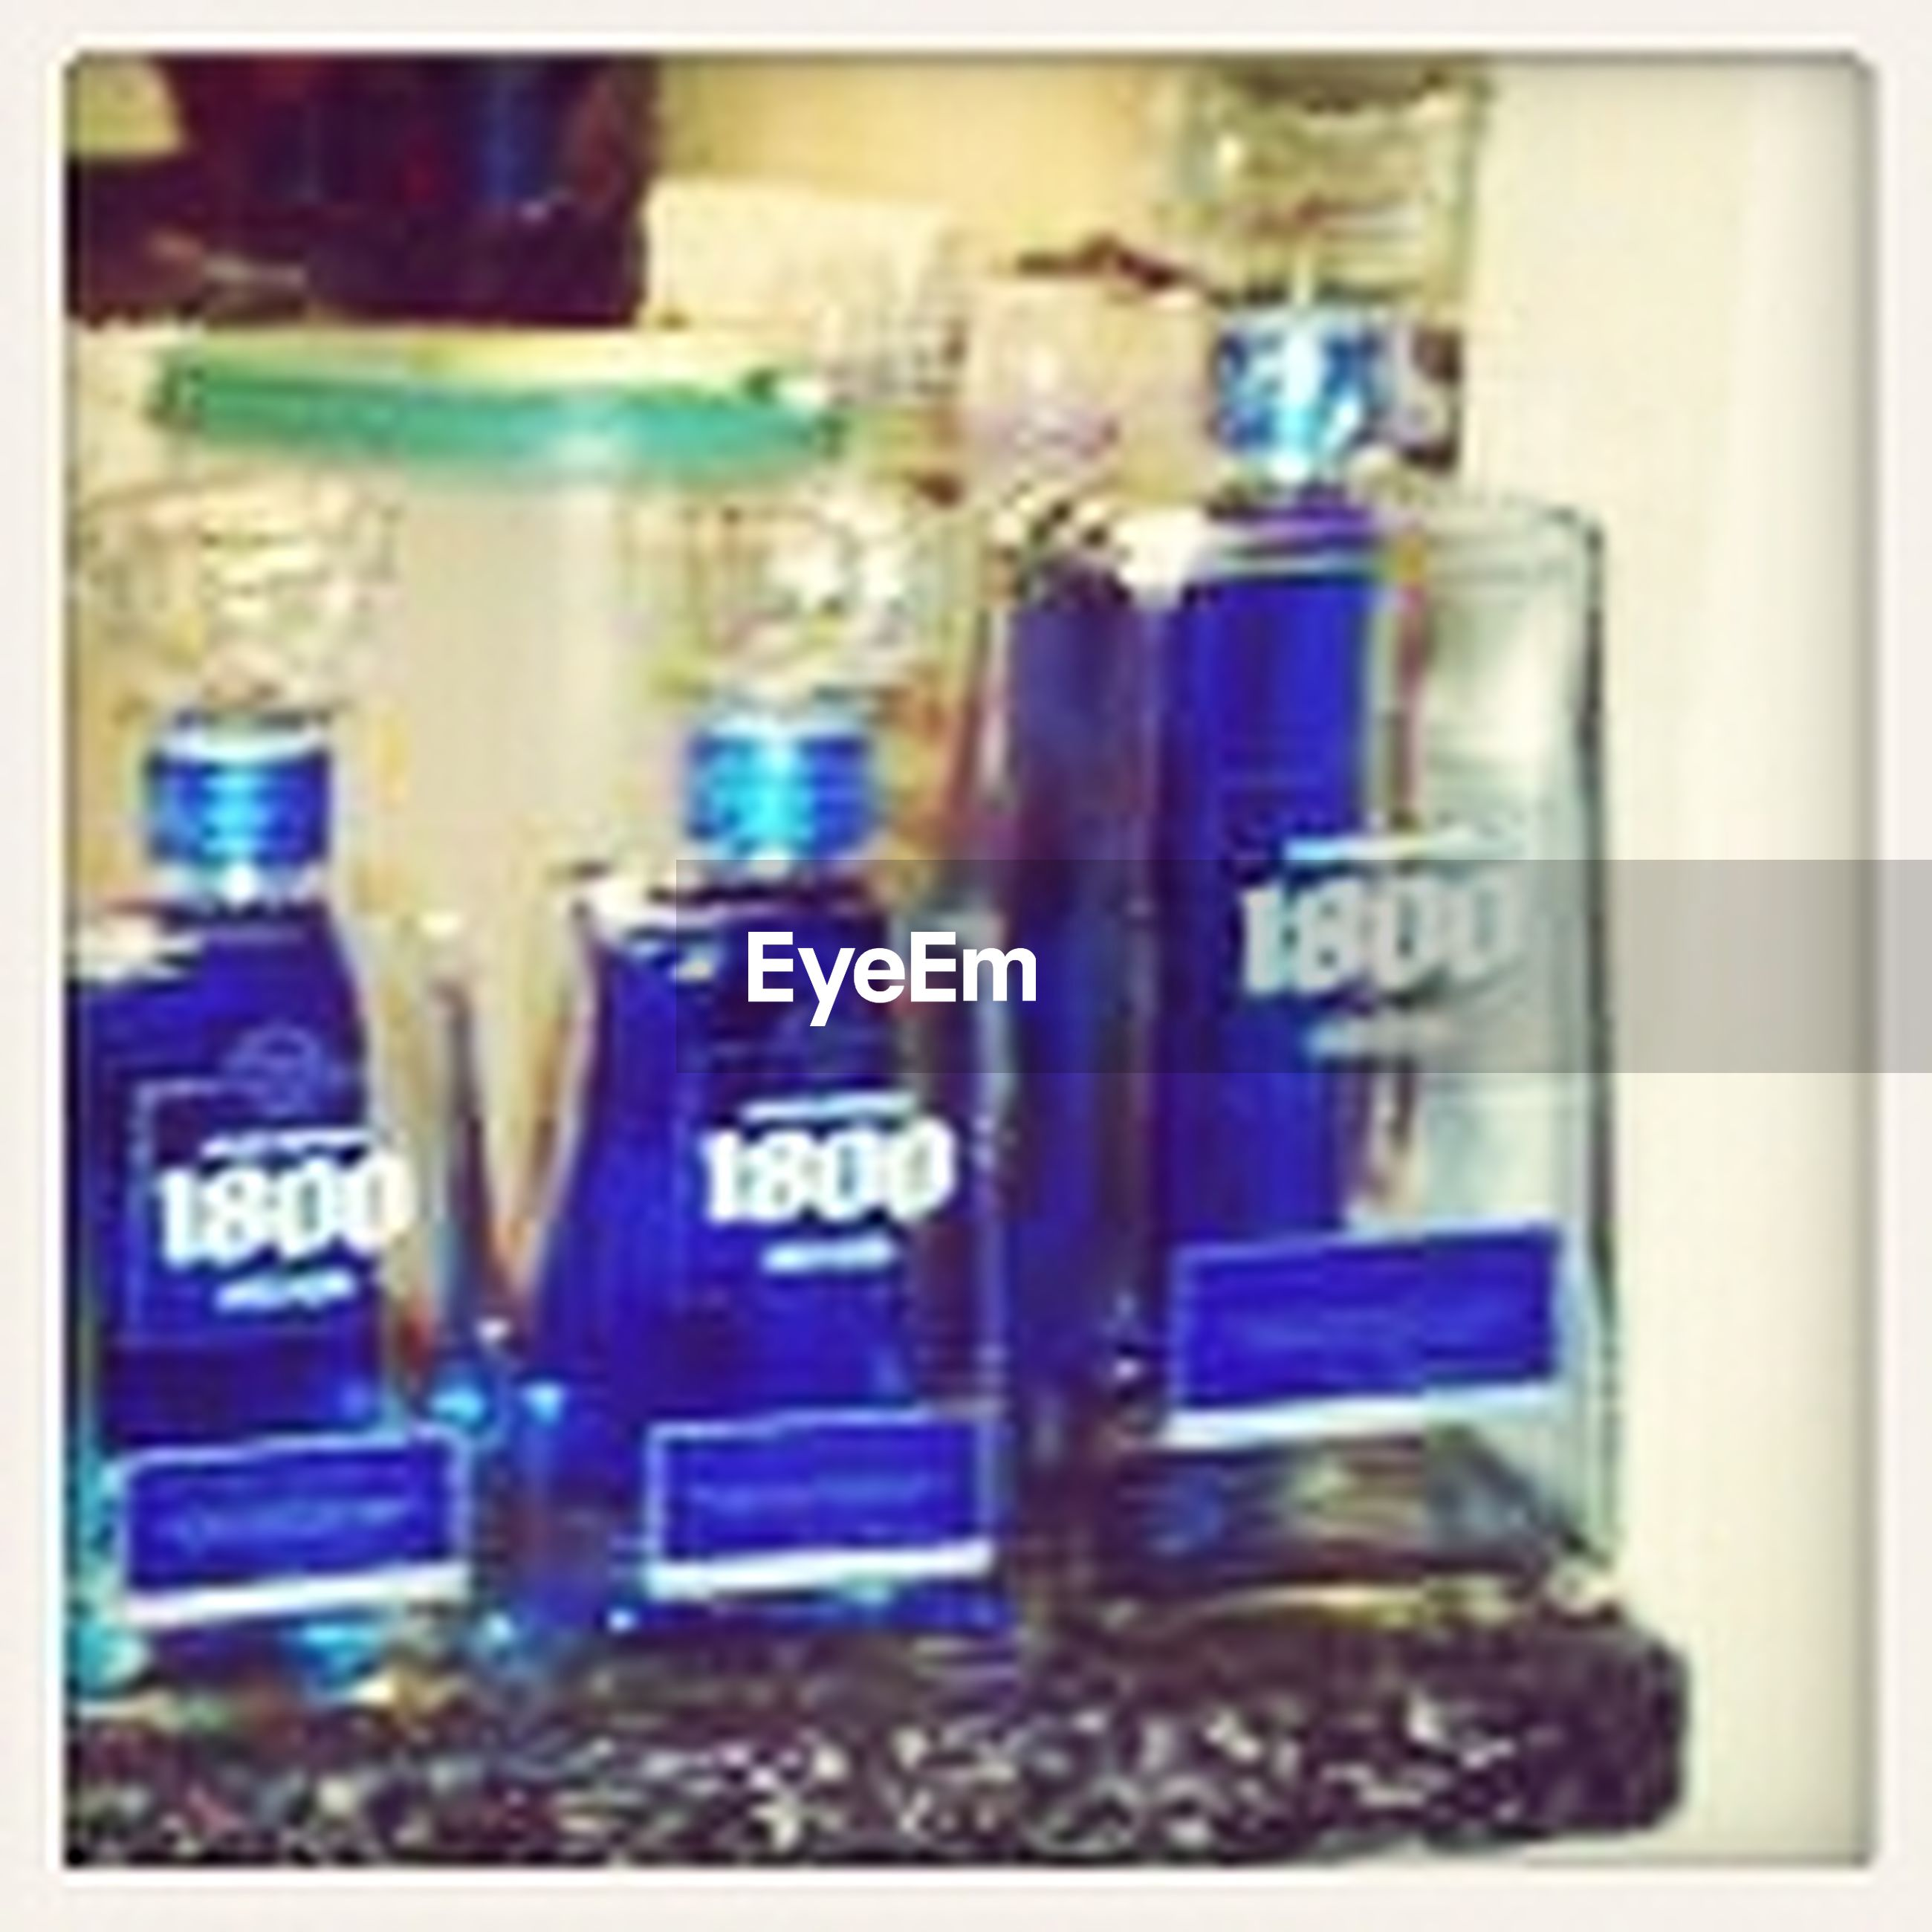 indoors, transfer print, communication, selective focus, auto post production filter, focus on foreground, text, close-up, western script, blue, variation, glass - material, no people, transparent, technology, still life, bottle, in a row, large group of objects, reflection